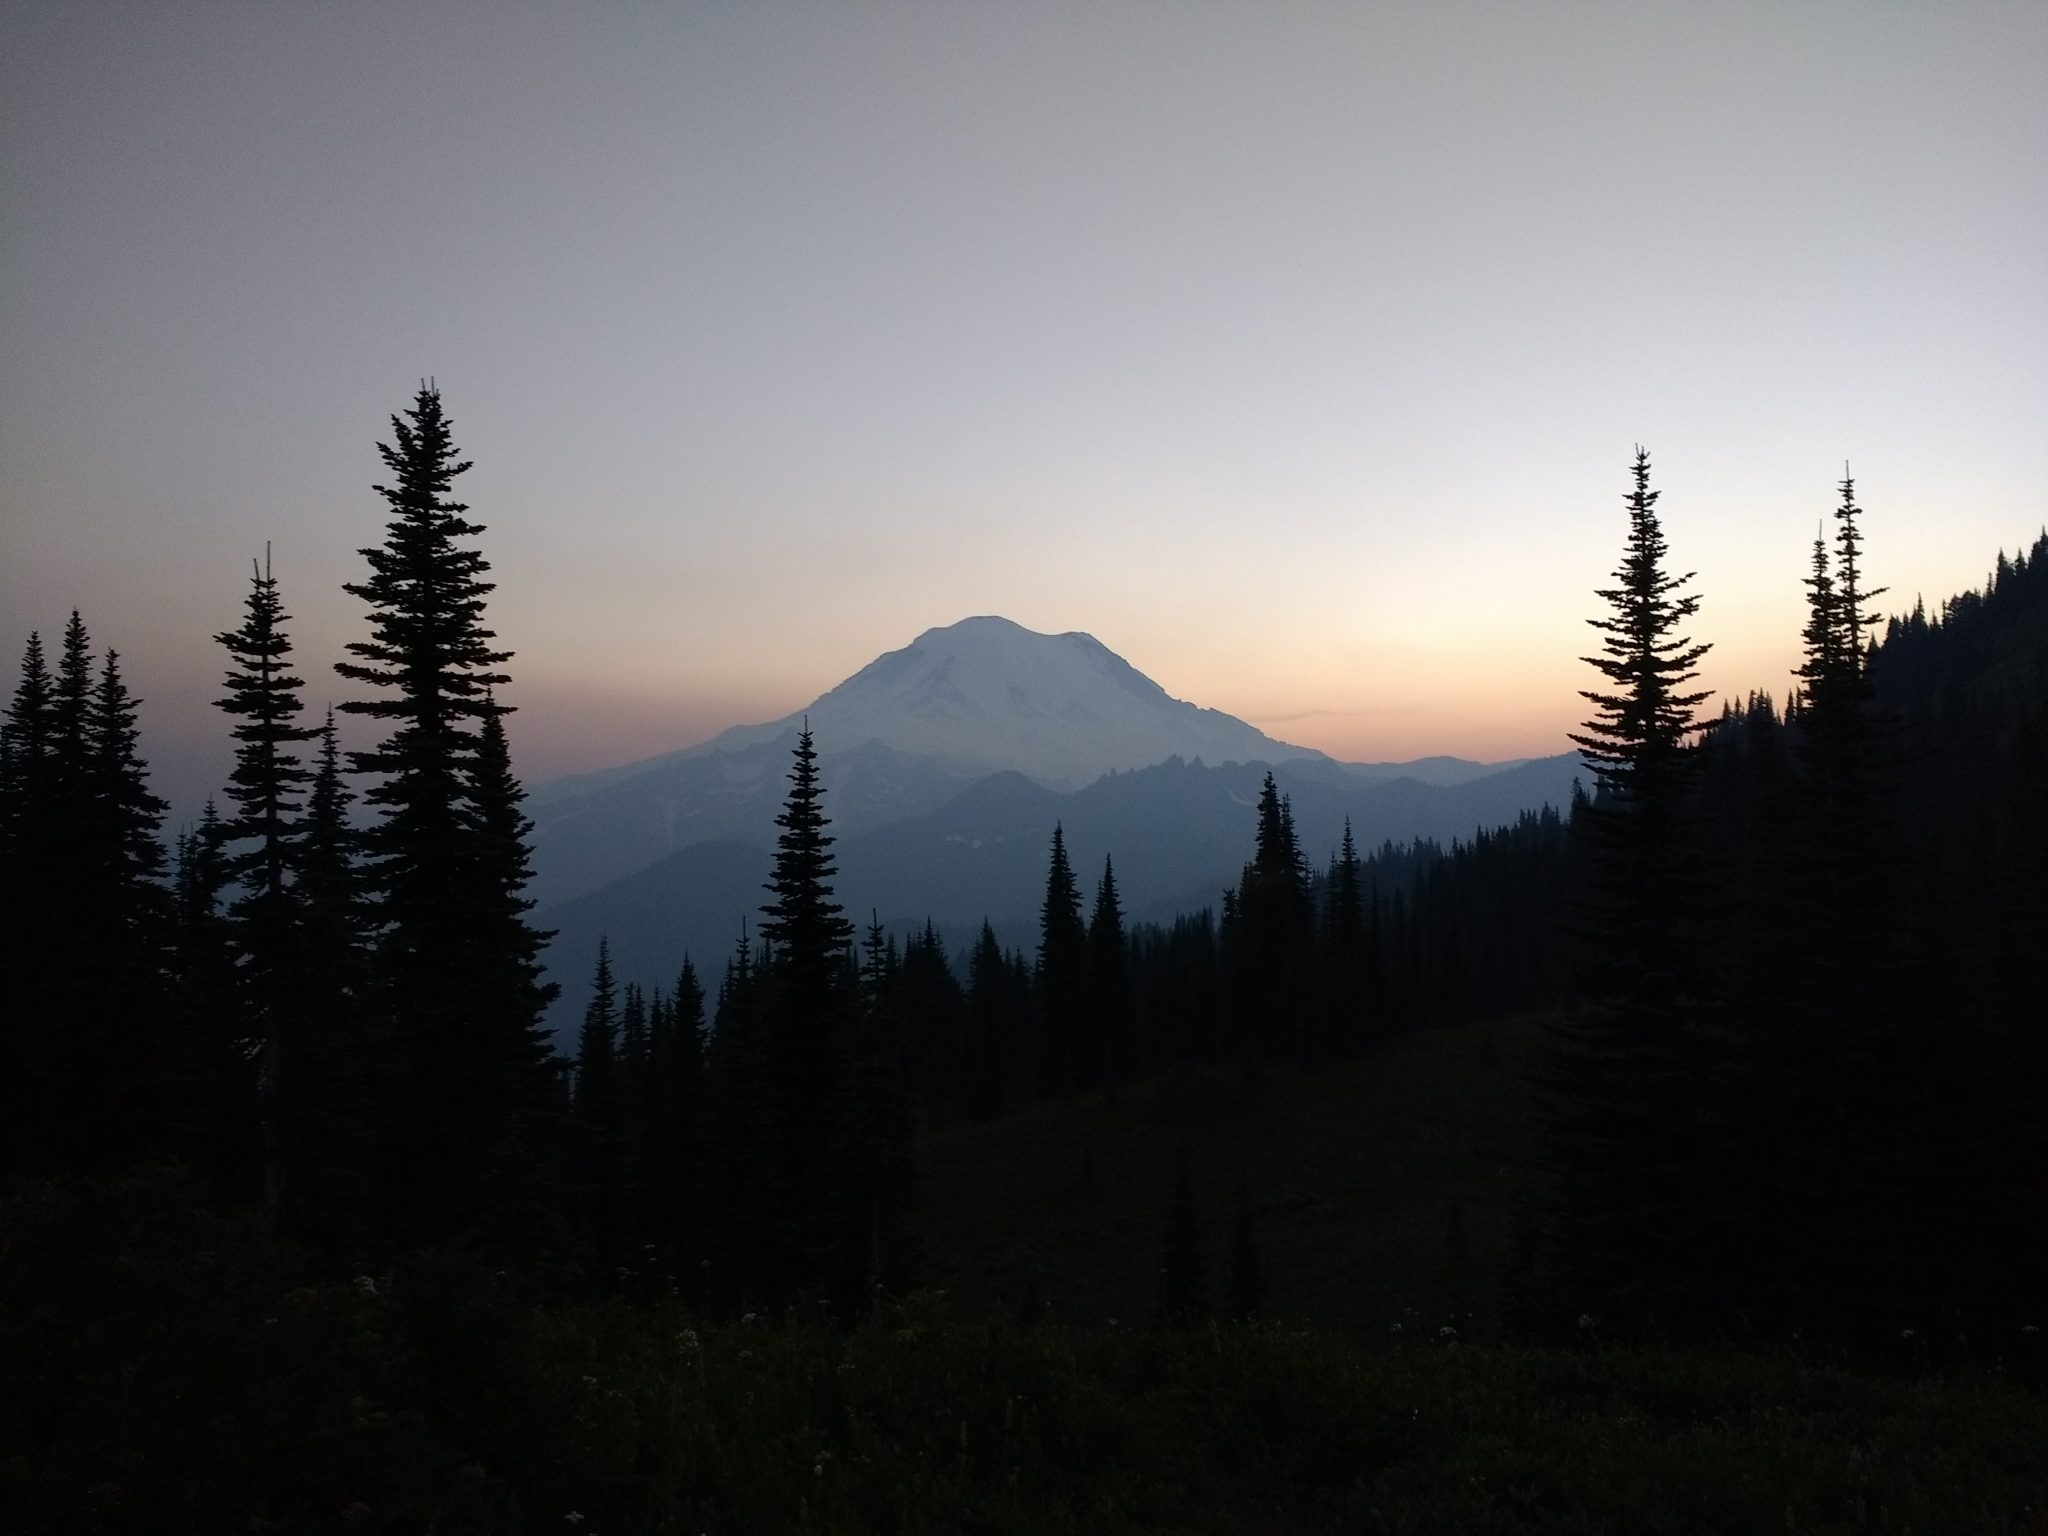 On the Naches Peak Loop hike, Mt Rainier views are amazing! Here it is sunset and getting dark. Evergreen trees are silouetted in the foreground. In the background, a fading sunset illuminates the summit of Mt Rainier